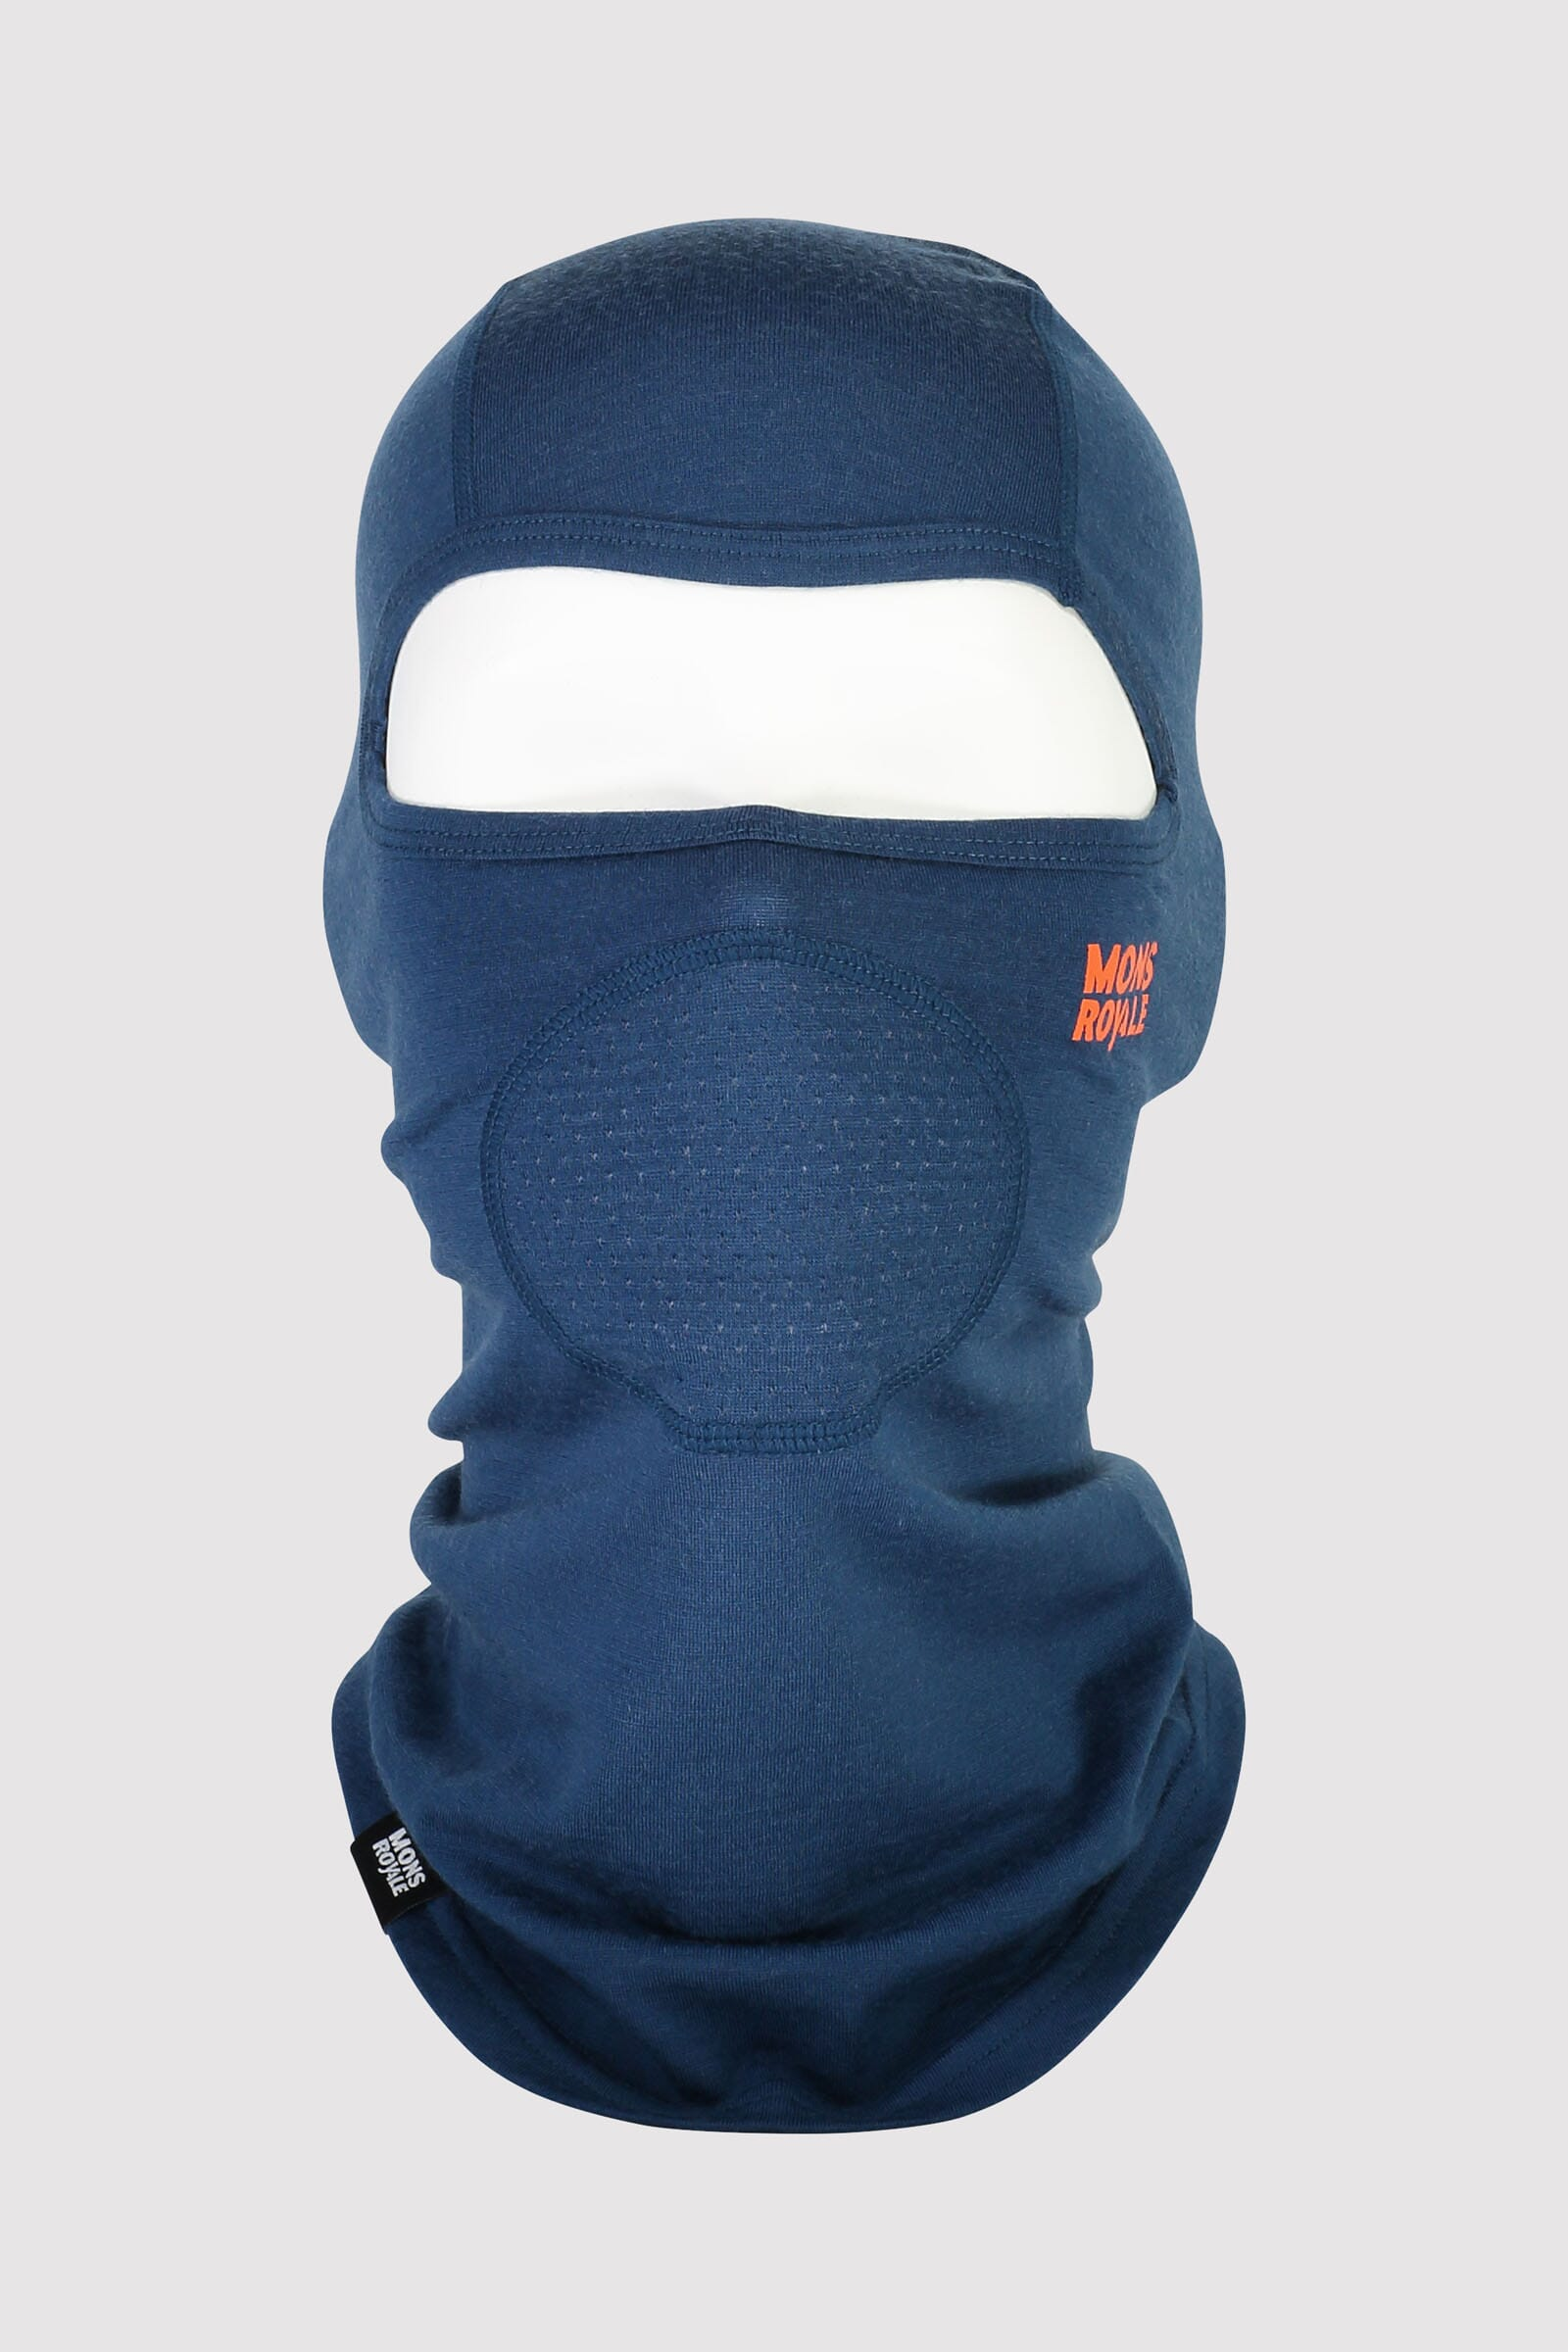 Airolo Tech Balaclava - Atlantic